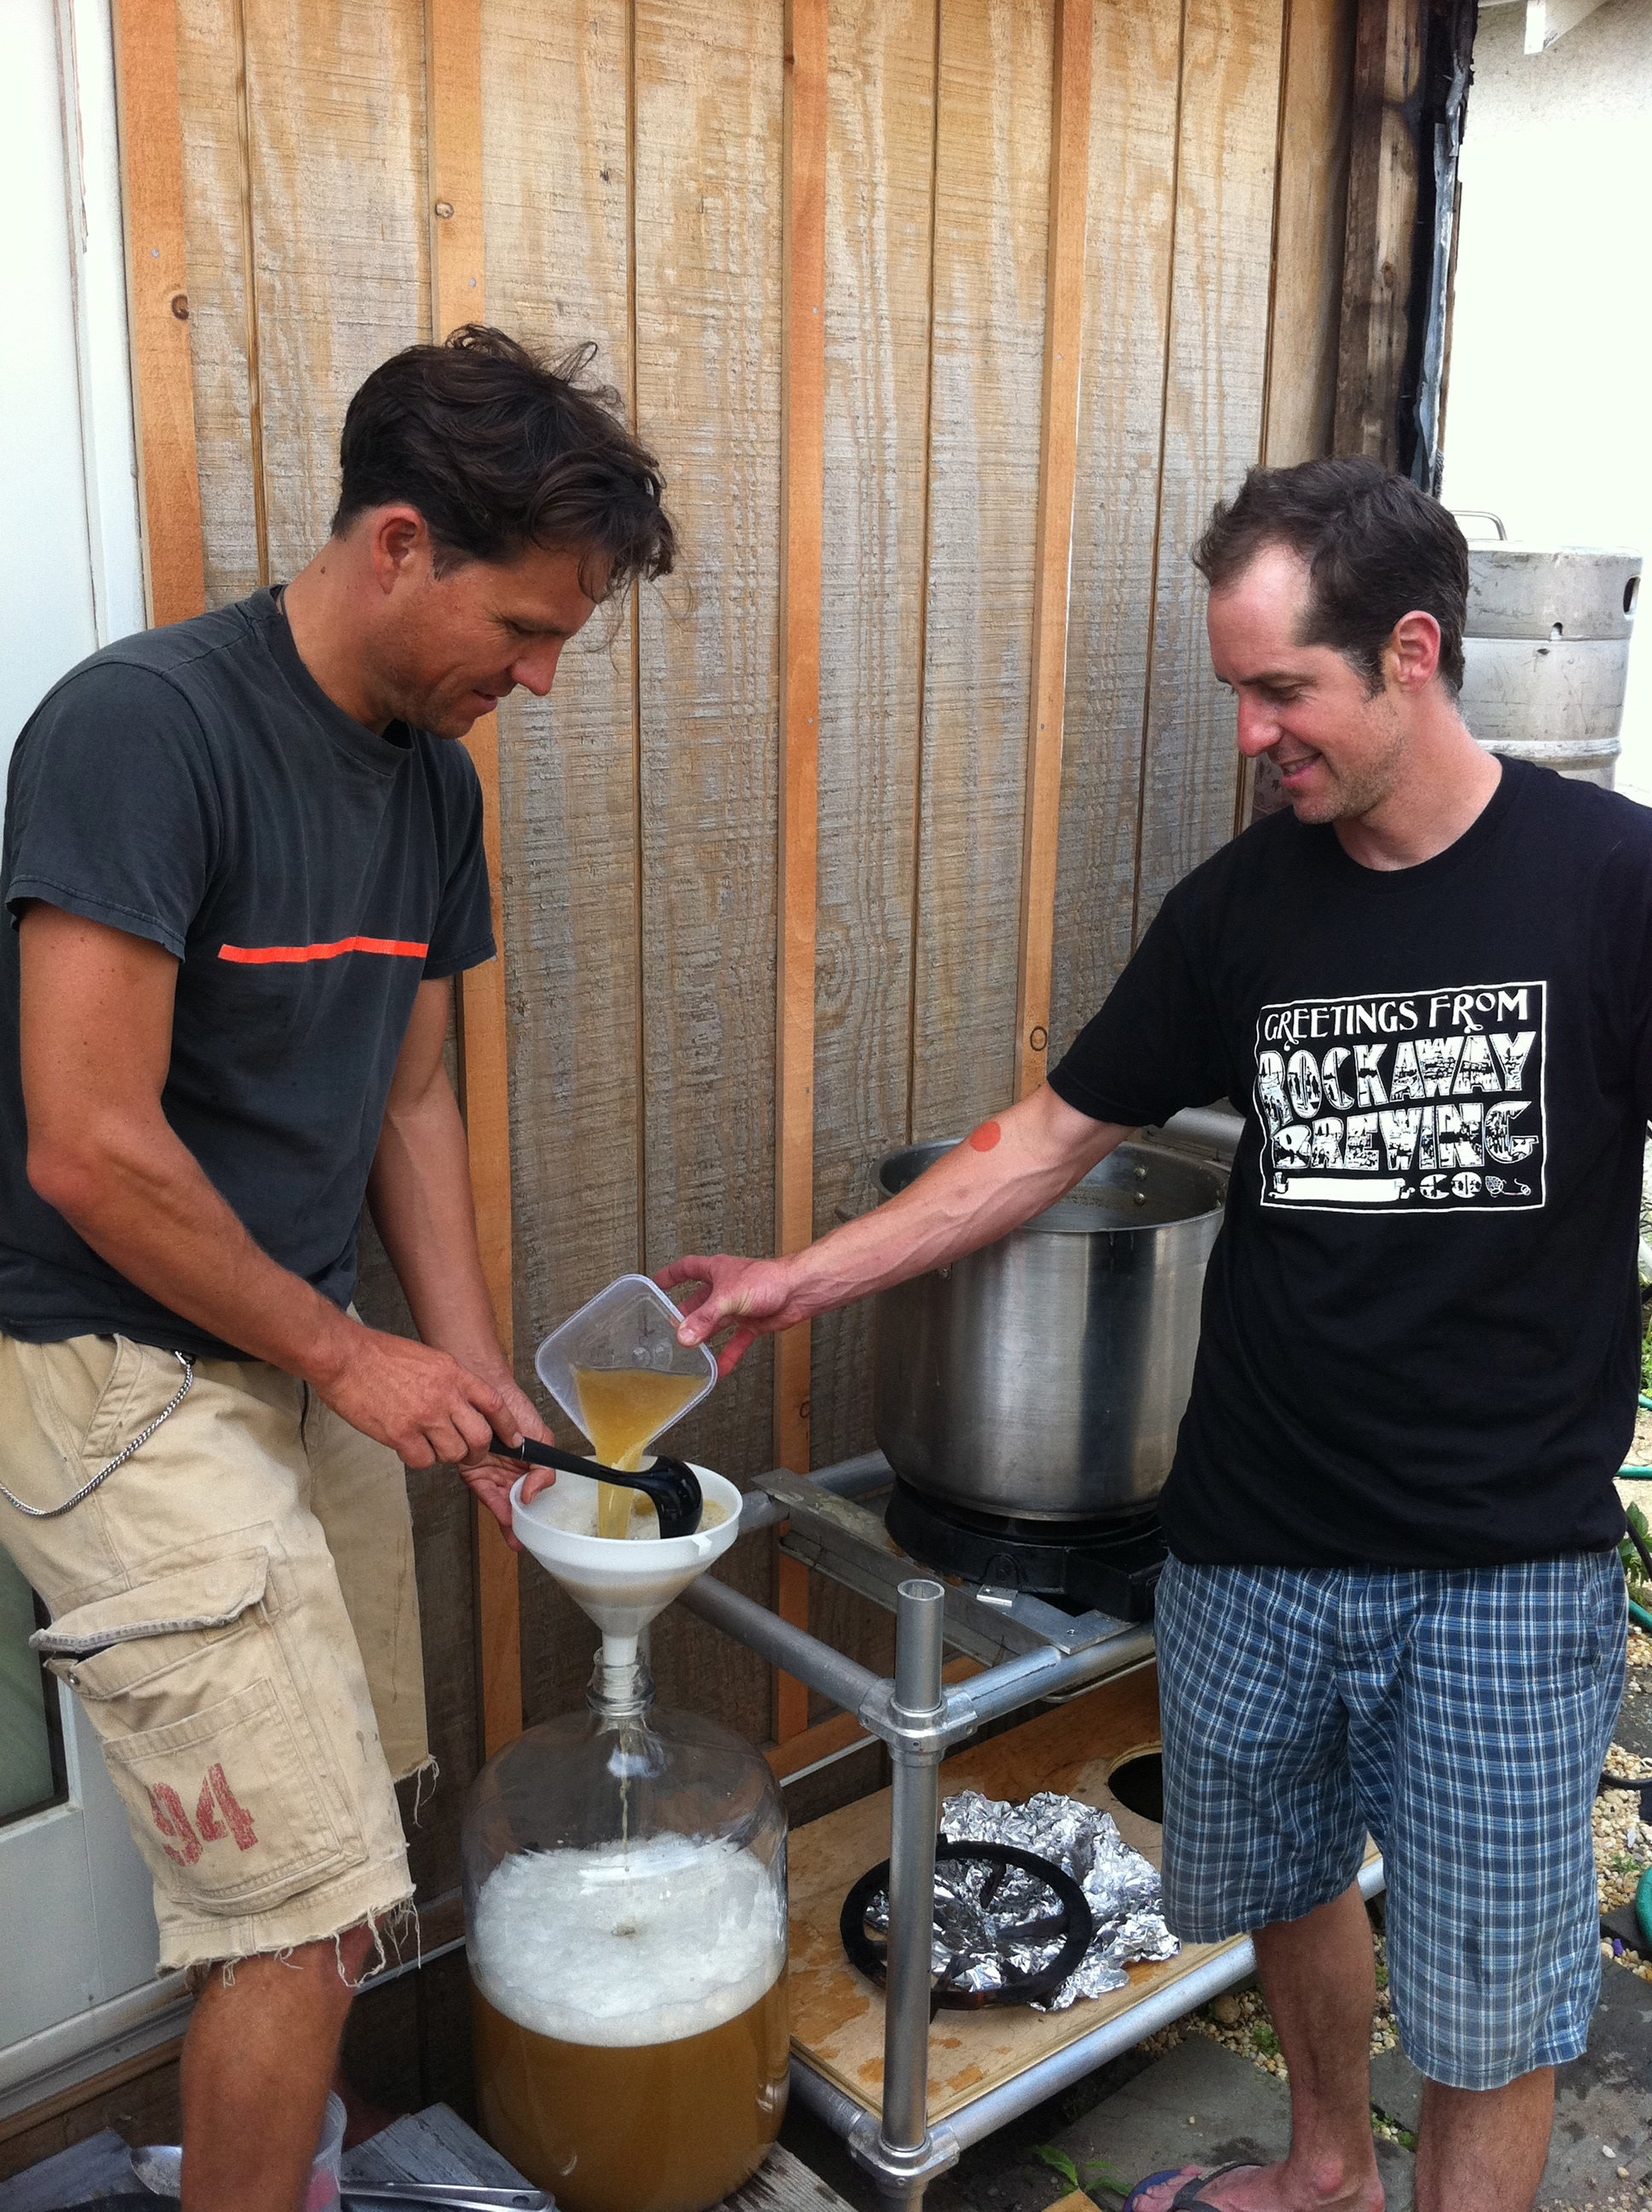 Brewing in our backyards in Rockaway.